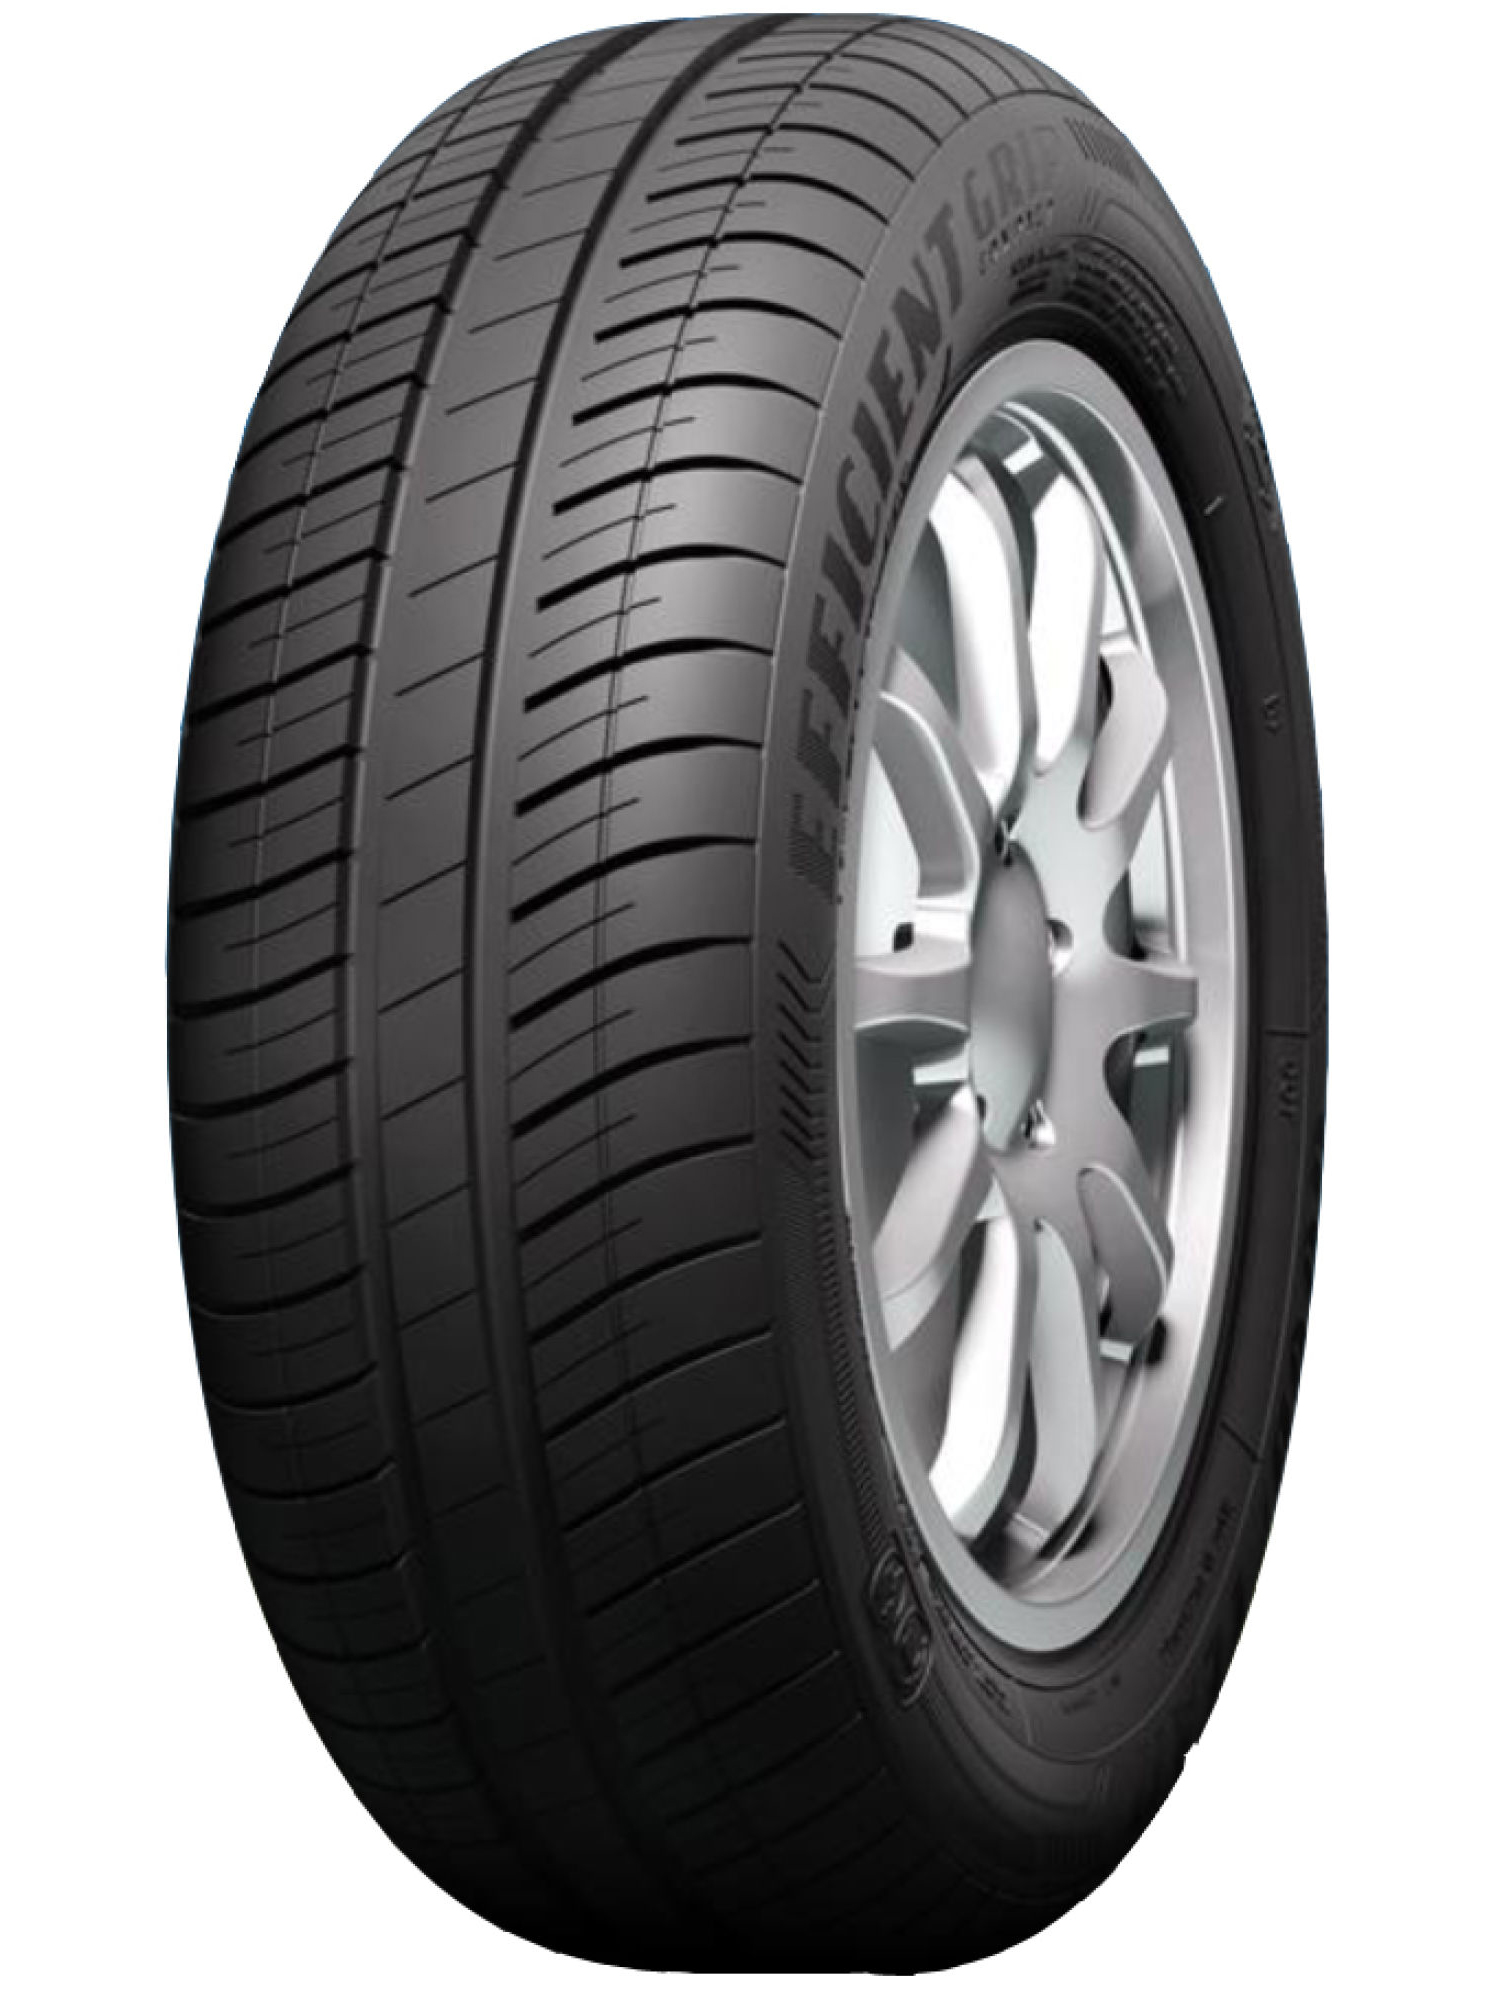 Anvelopa vara GOODYEAR Efficientgrip Compact 185/65 R14 86T